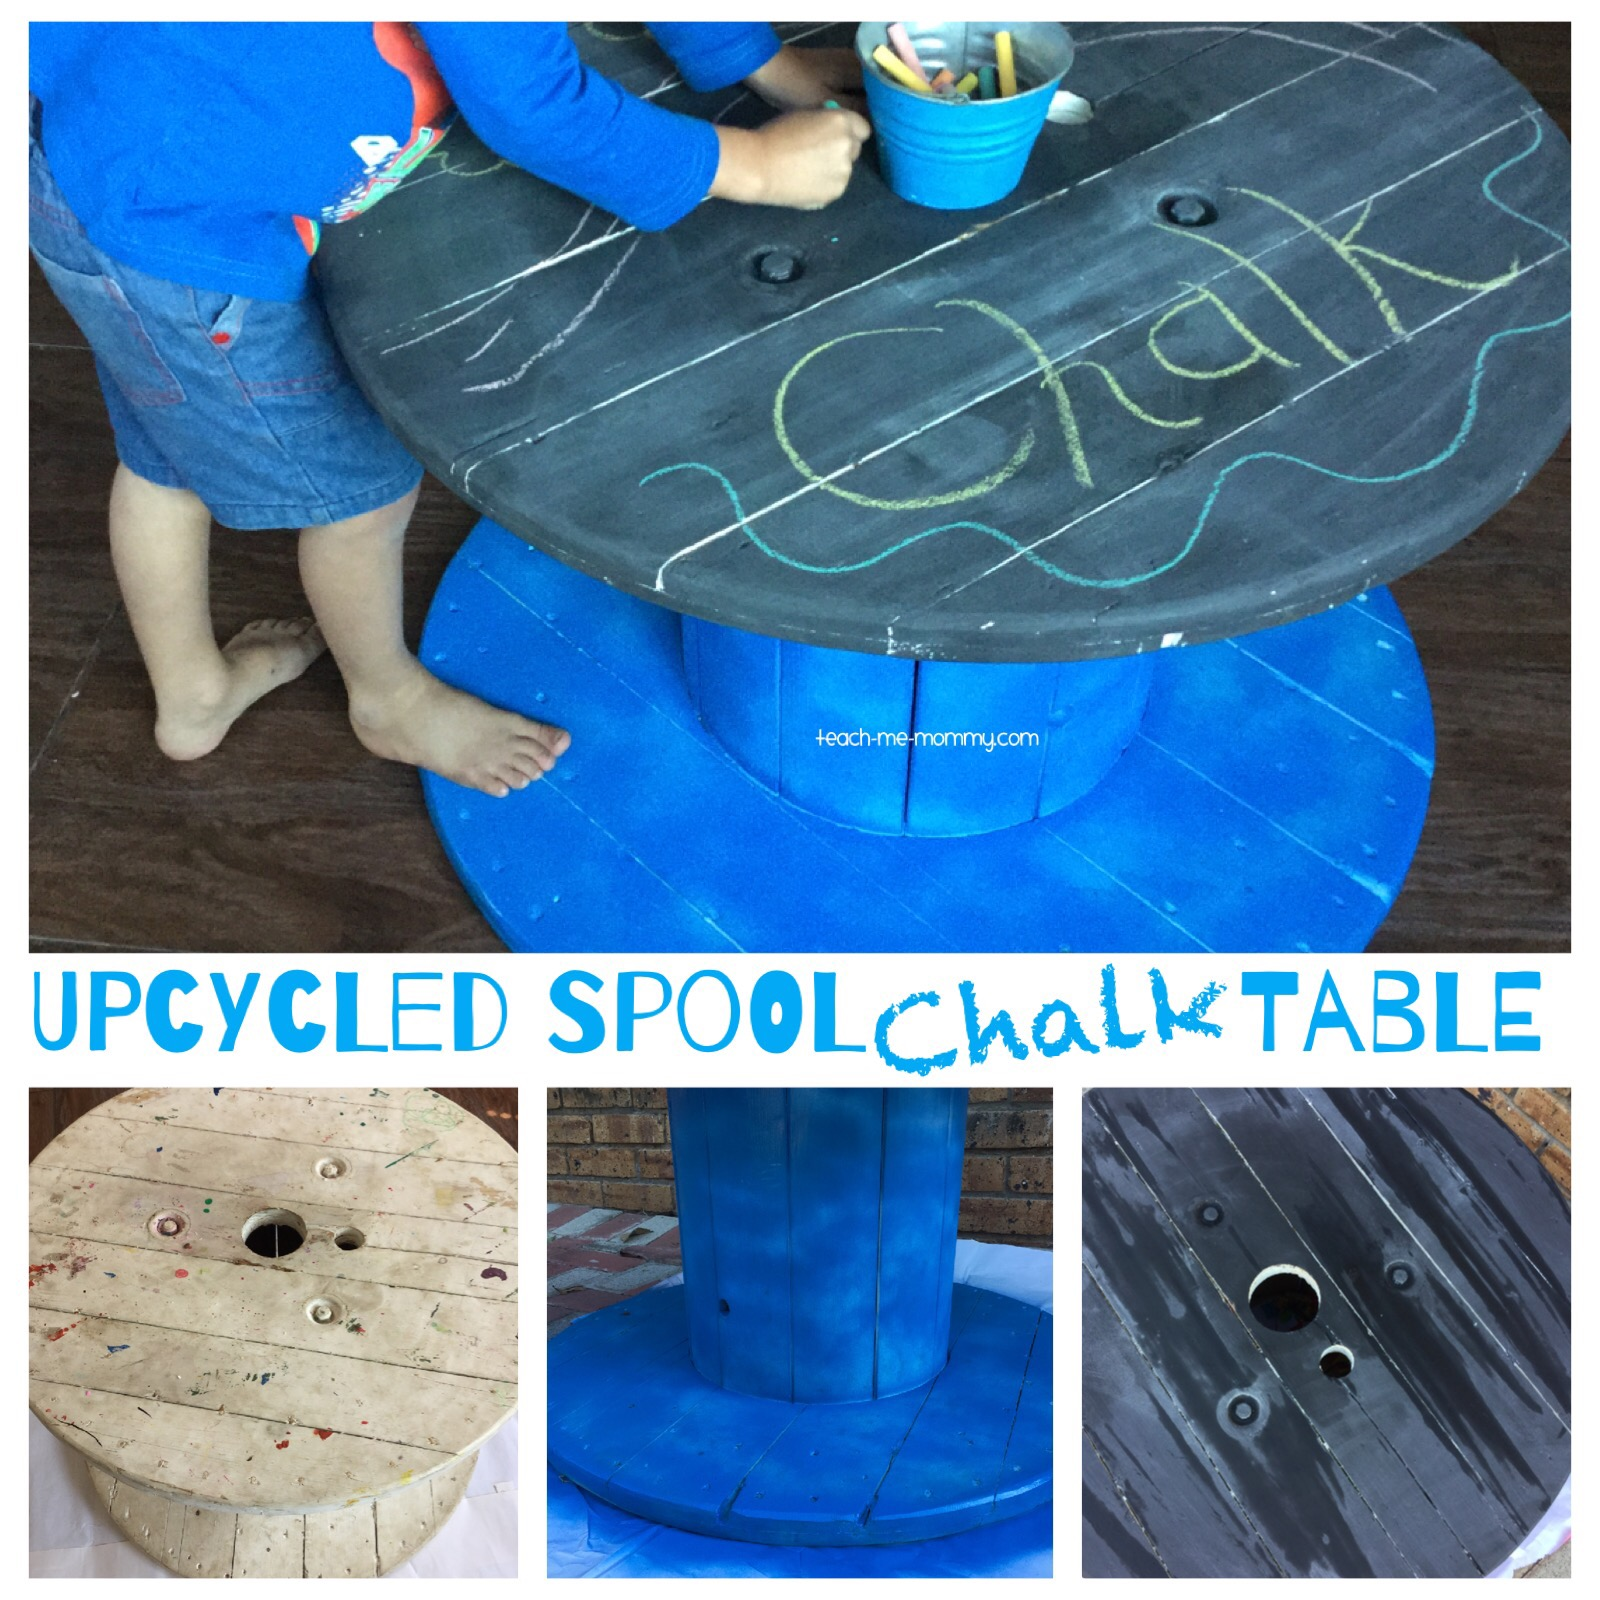 upcycled spool table